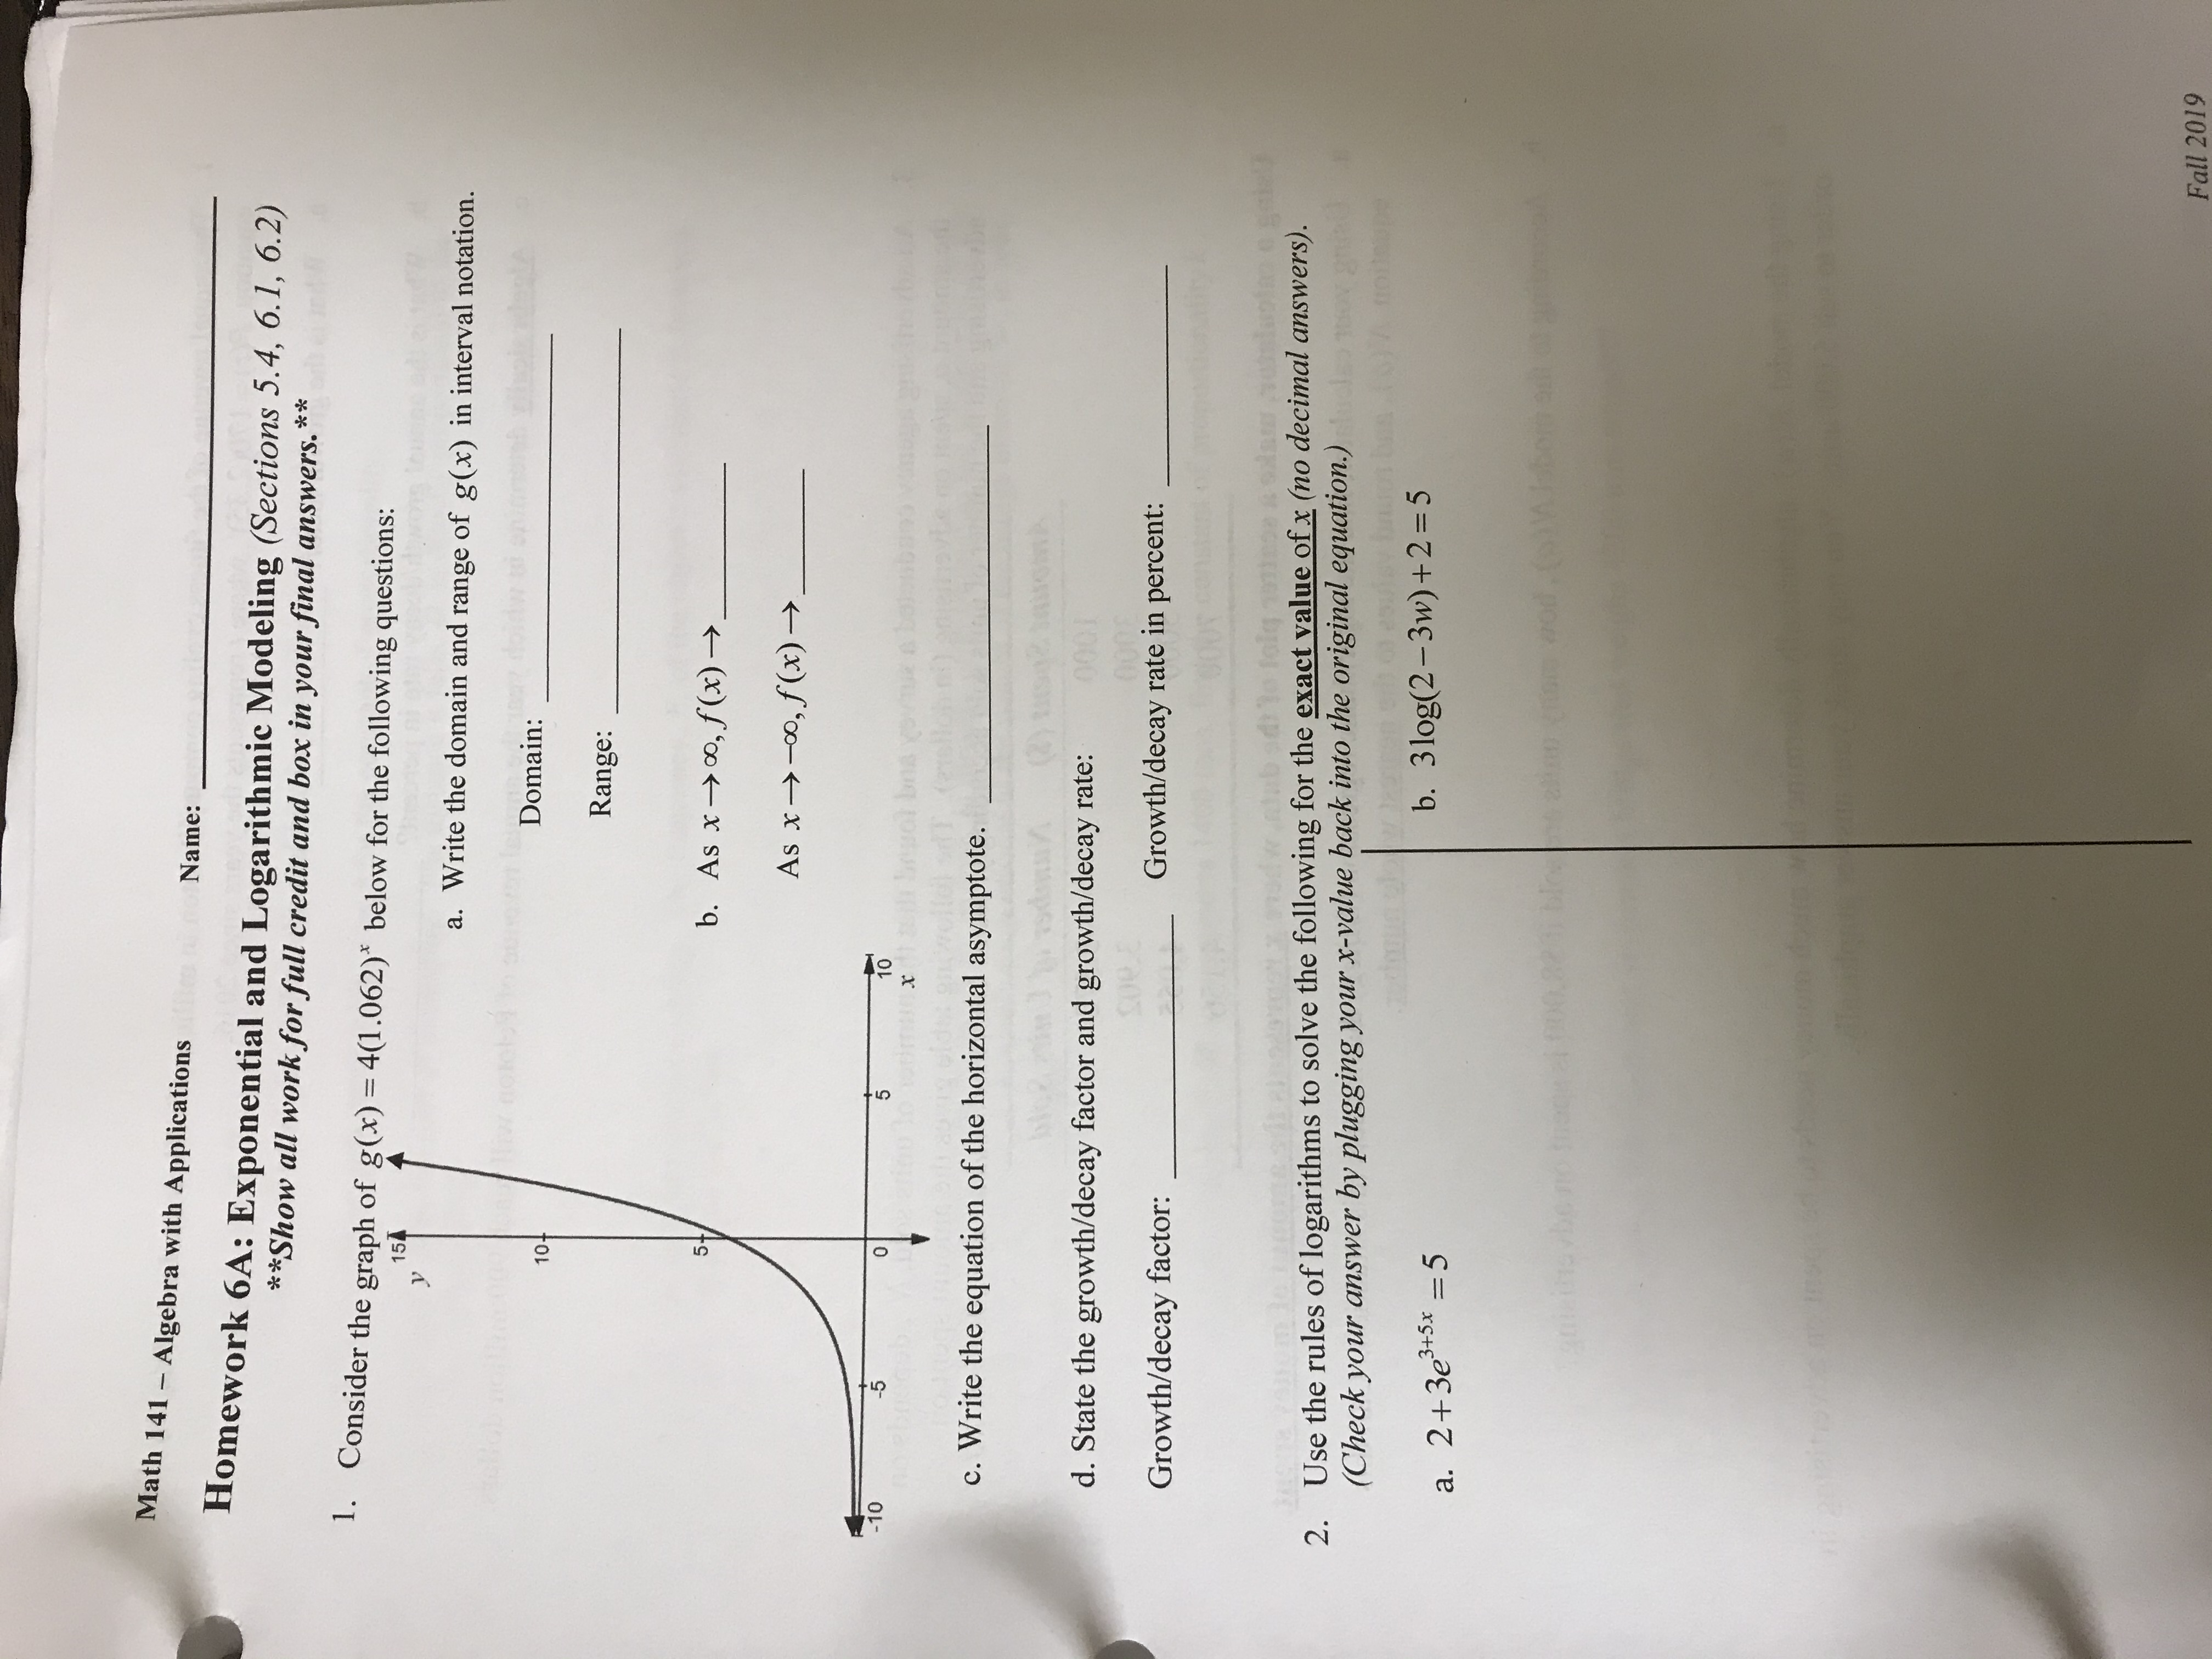 Math 141 Algebra with Applications Name: Homework 6A: Exponential and Logarithmic Modeling (Sections 5.4, 6.1, 6.2) **Show all work for full credit and box in your final answers.** 1. Consider the graph of g(x) = 4(1.062) below for the following questions: 154 a. Write the domain and range of g(x) in interval notation. rou SU Domain: 10+ Range: 5+ b. As xo,f(x)->. o,f (x)- As x -10 -5 0 5 10 Soual boave x c. Write the equation of the horizontal asymptote. d. State the growth/decay factor and growth/decay rate: 000 Growth/decay rate in percent: Growth/decay factor: Use the rules of logarithms to solve the following for the exact value of x (no decimal answers). (Check your answer 2. by plugging your x-value back into the original equation.) b. 3log(2-3w)+2 = 5 a. 2+3e5x 5 u tevbe r antiton Fall 2019